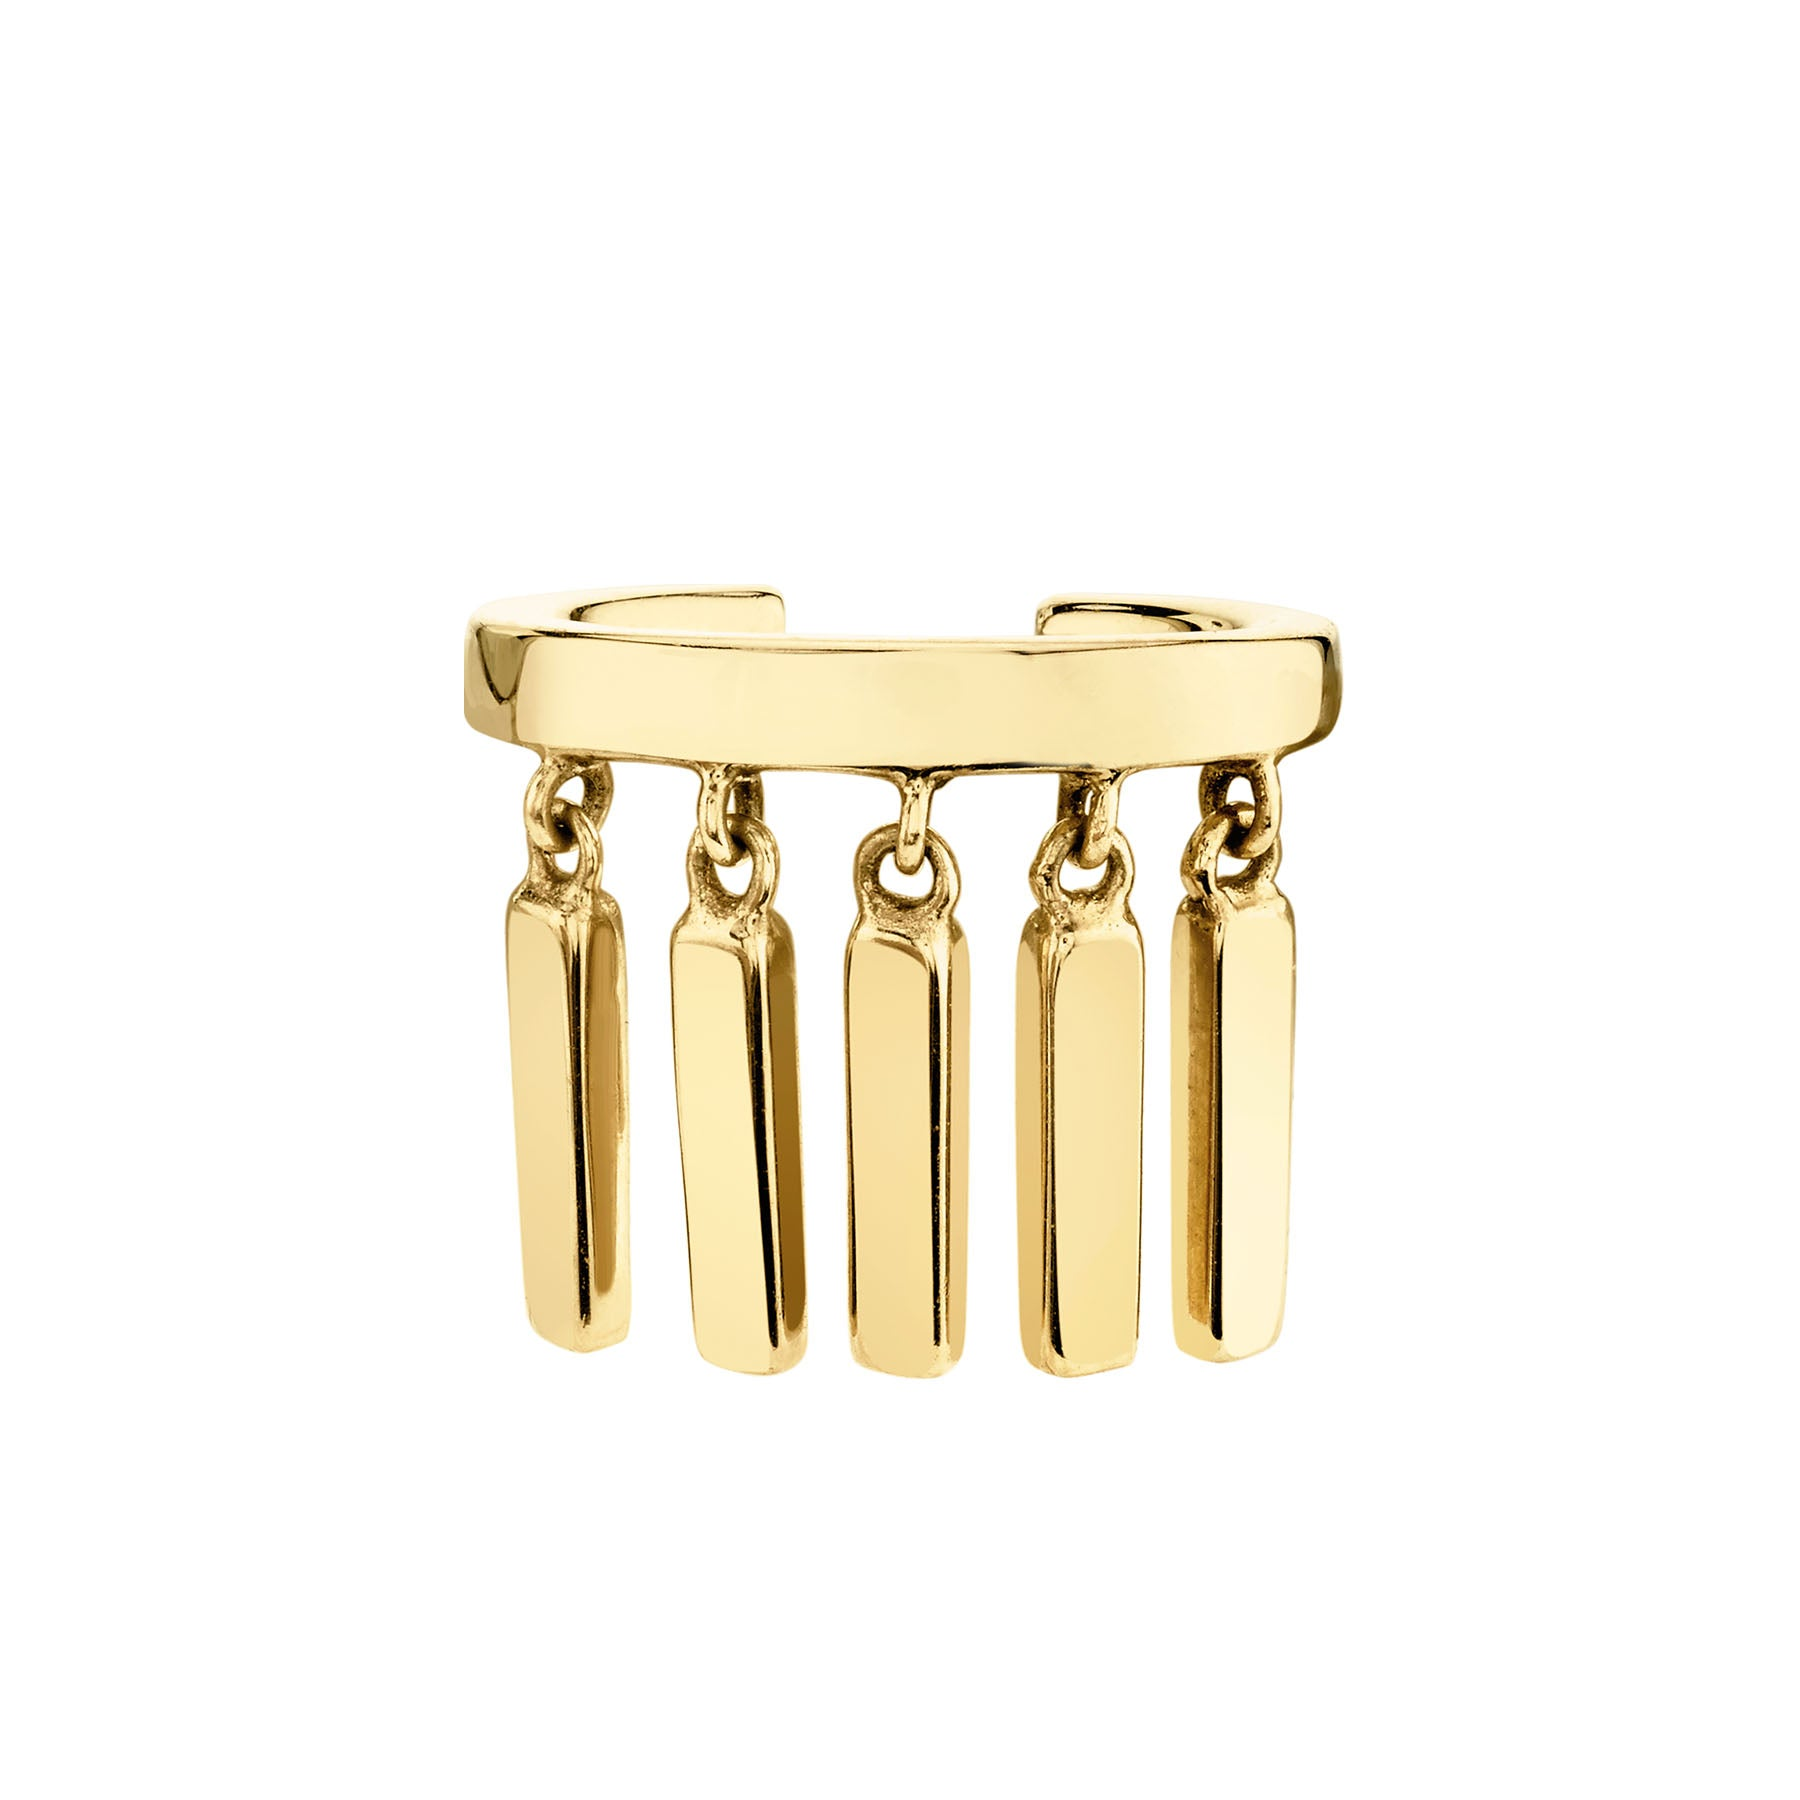 GOLD BAR SLIM CUFF